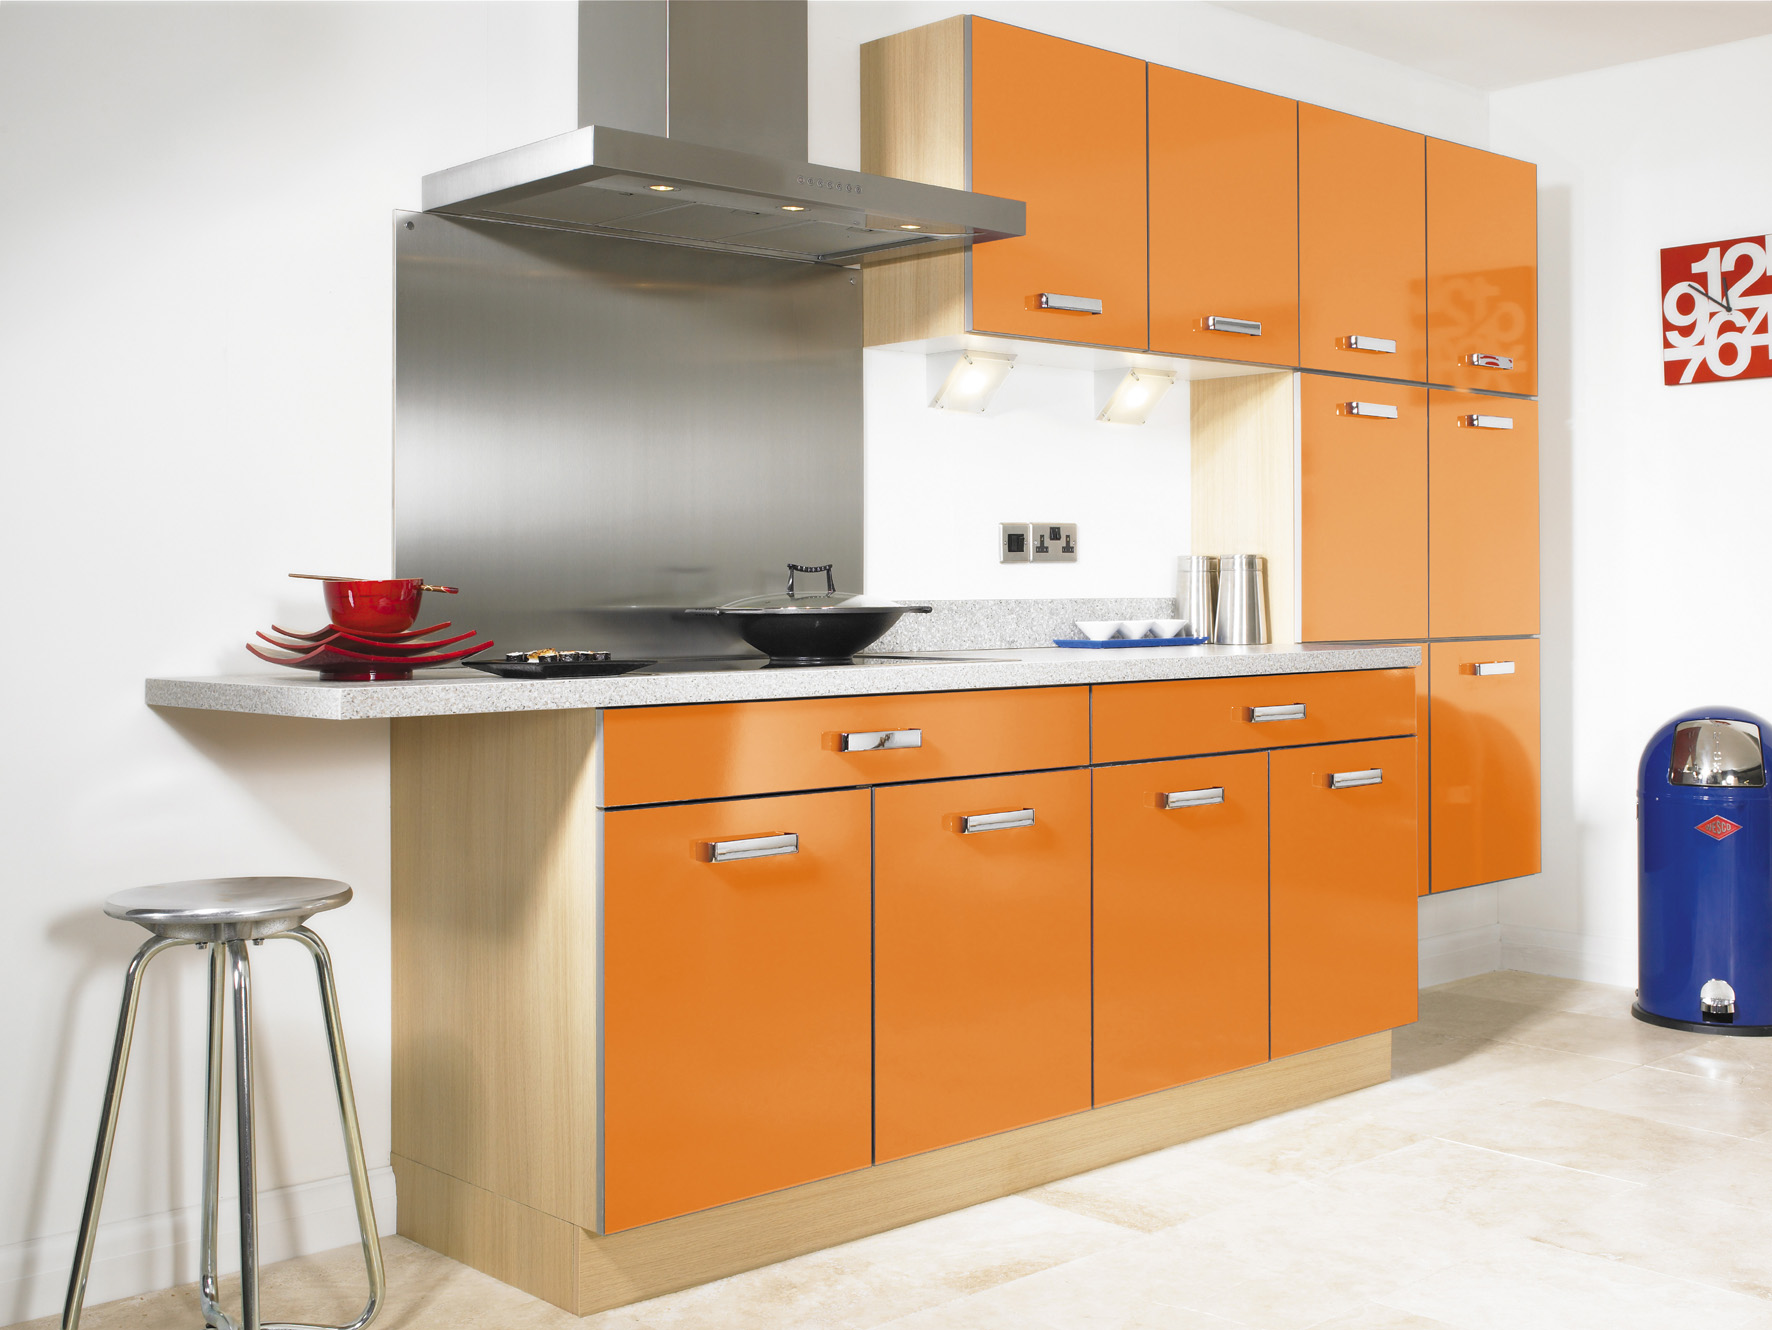 project gallery kitchen cabinet gloss acrylic kitchen cabinet kitchen eat kitchen designs orange gloss kitchen designs contemporary